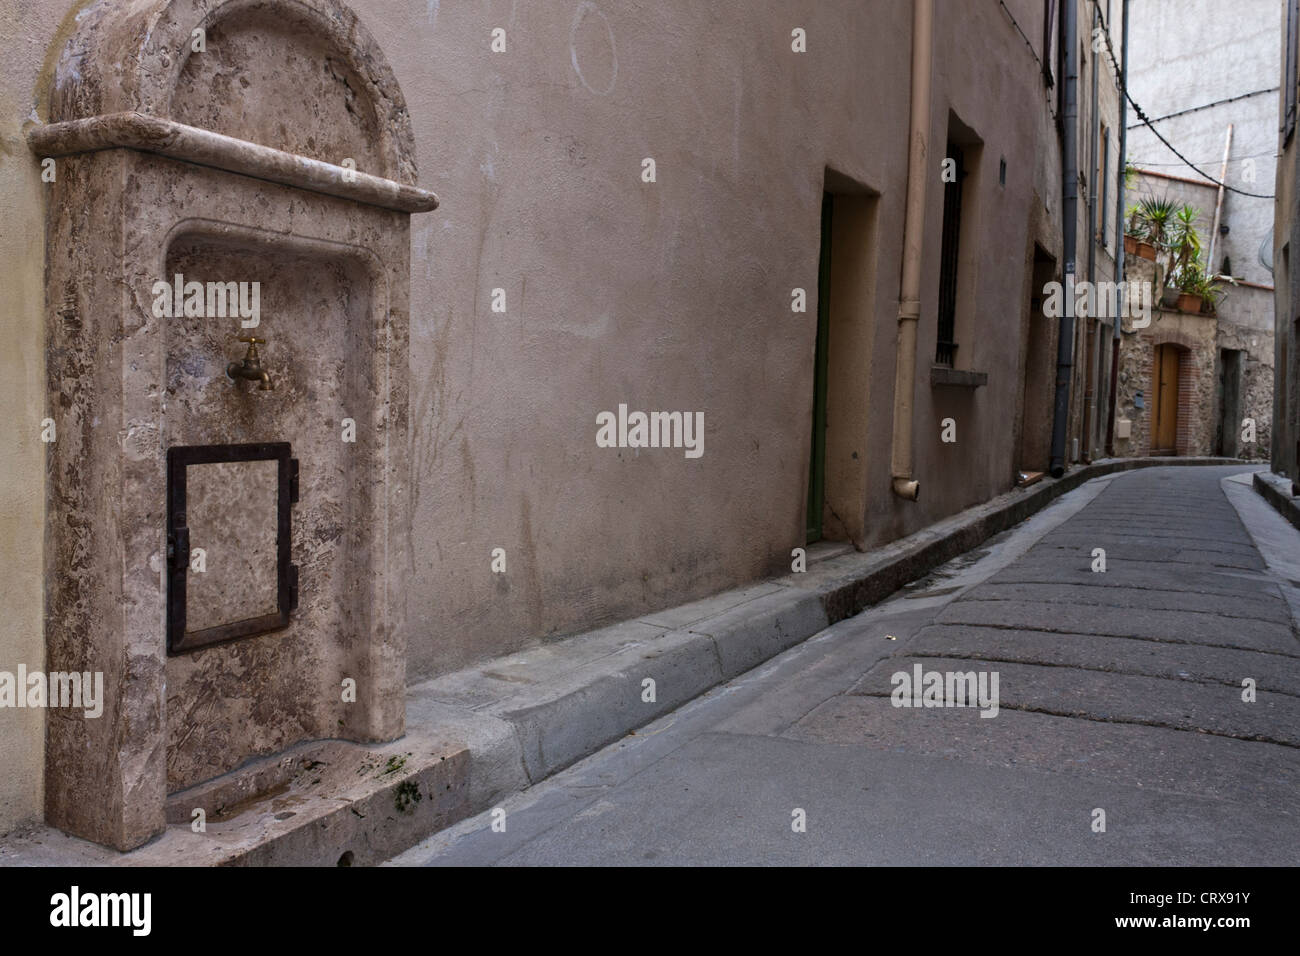 A public drinking water tap on a side street in the tourist town of Ceret, Languedoc-Roussillon, France. - Stock Image